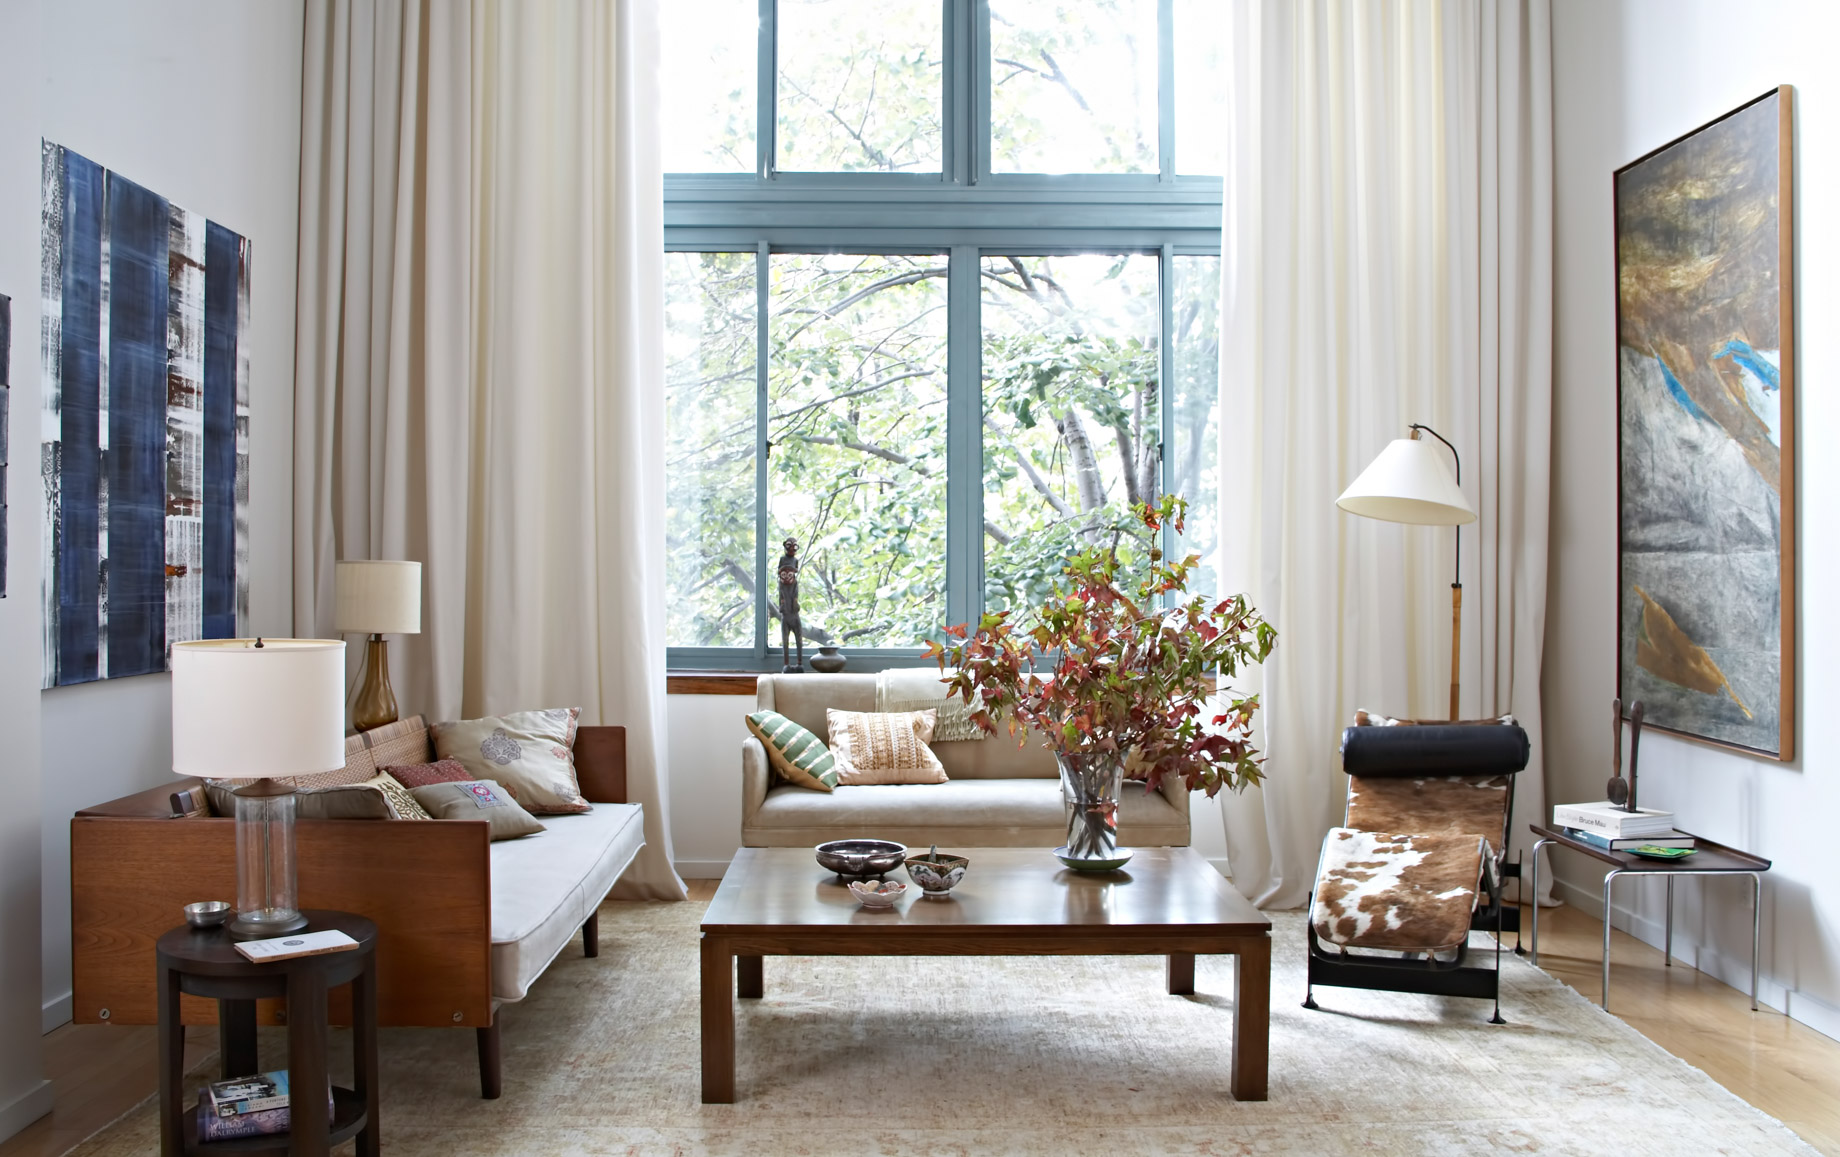 Draperies Add Style - Upscale Your Living Spaces - How to Make Your Home Look and Feel Luxurious